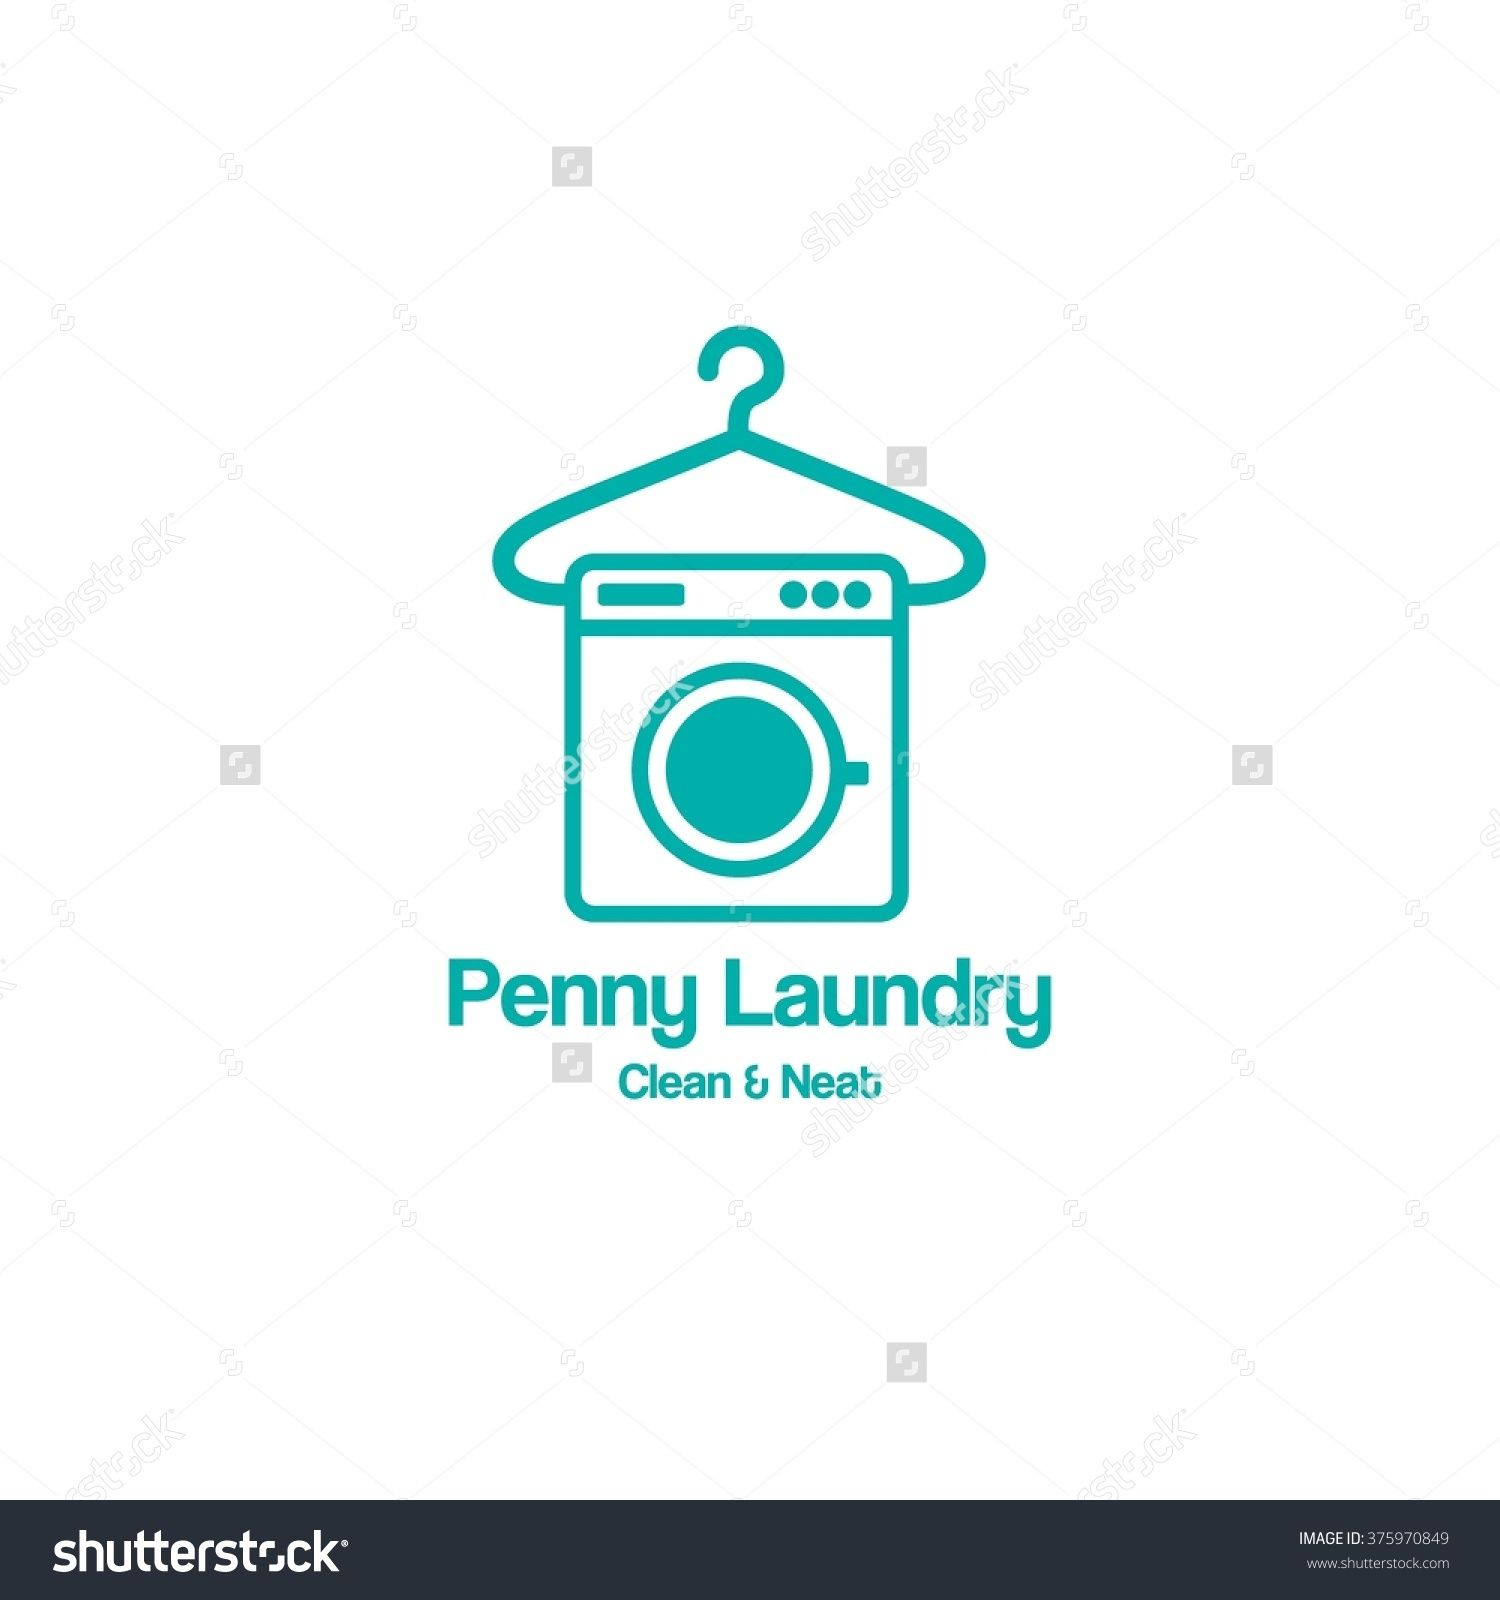 Laundry Label And Badge Washing Machine Laundry Washer Good For